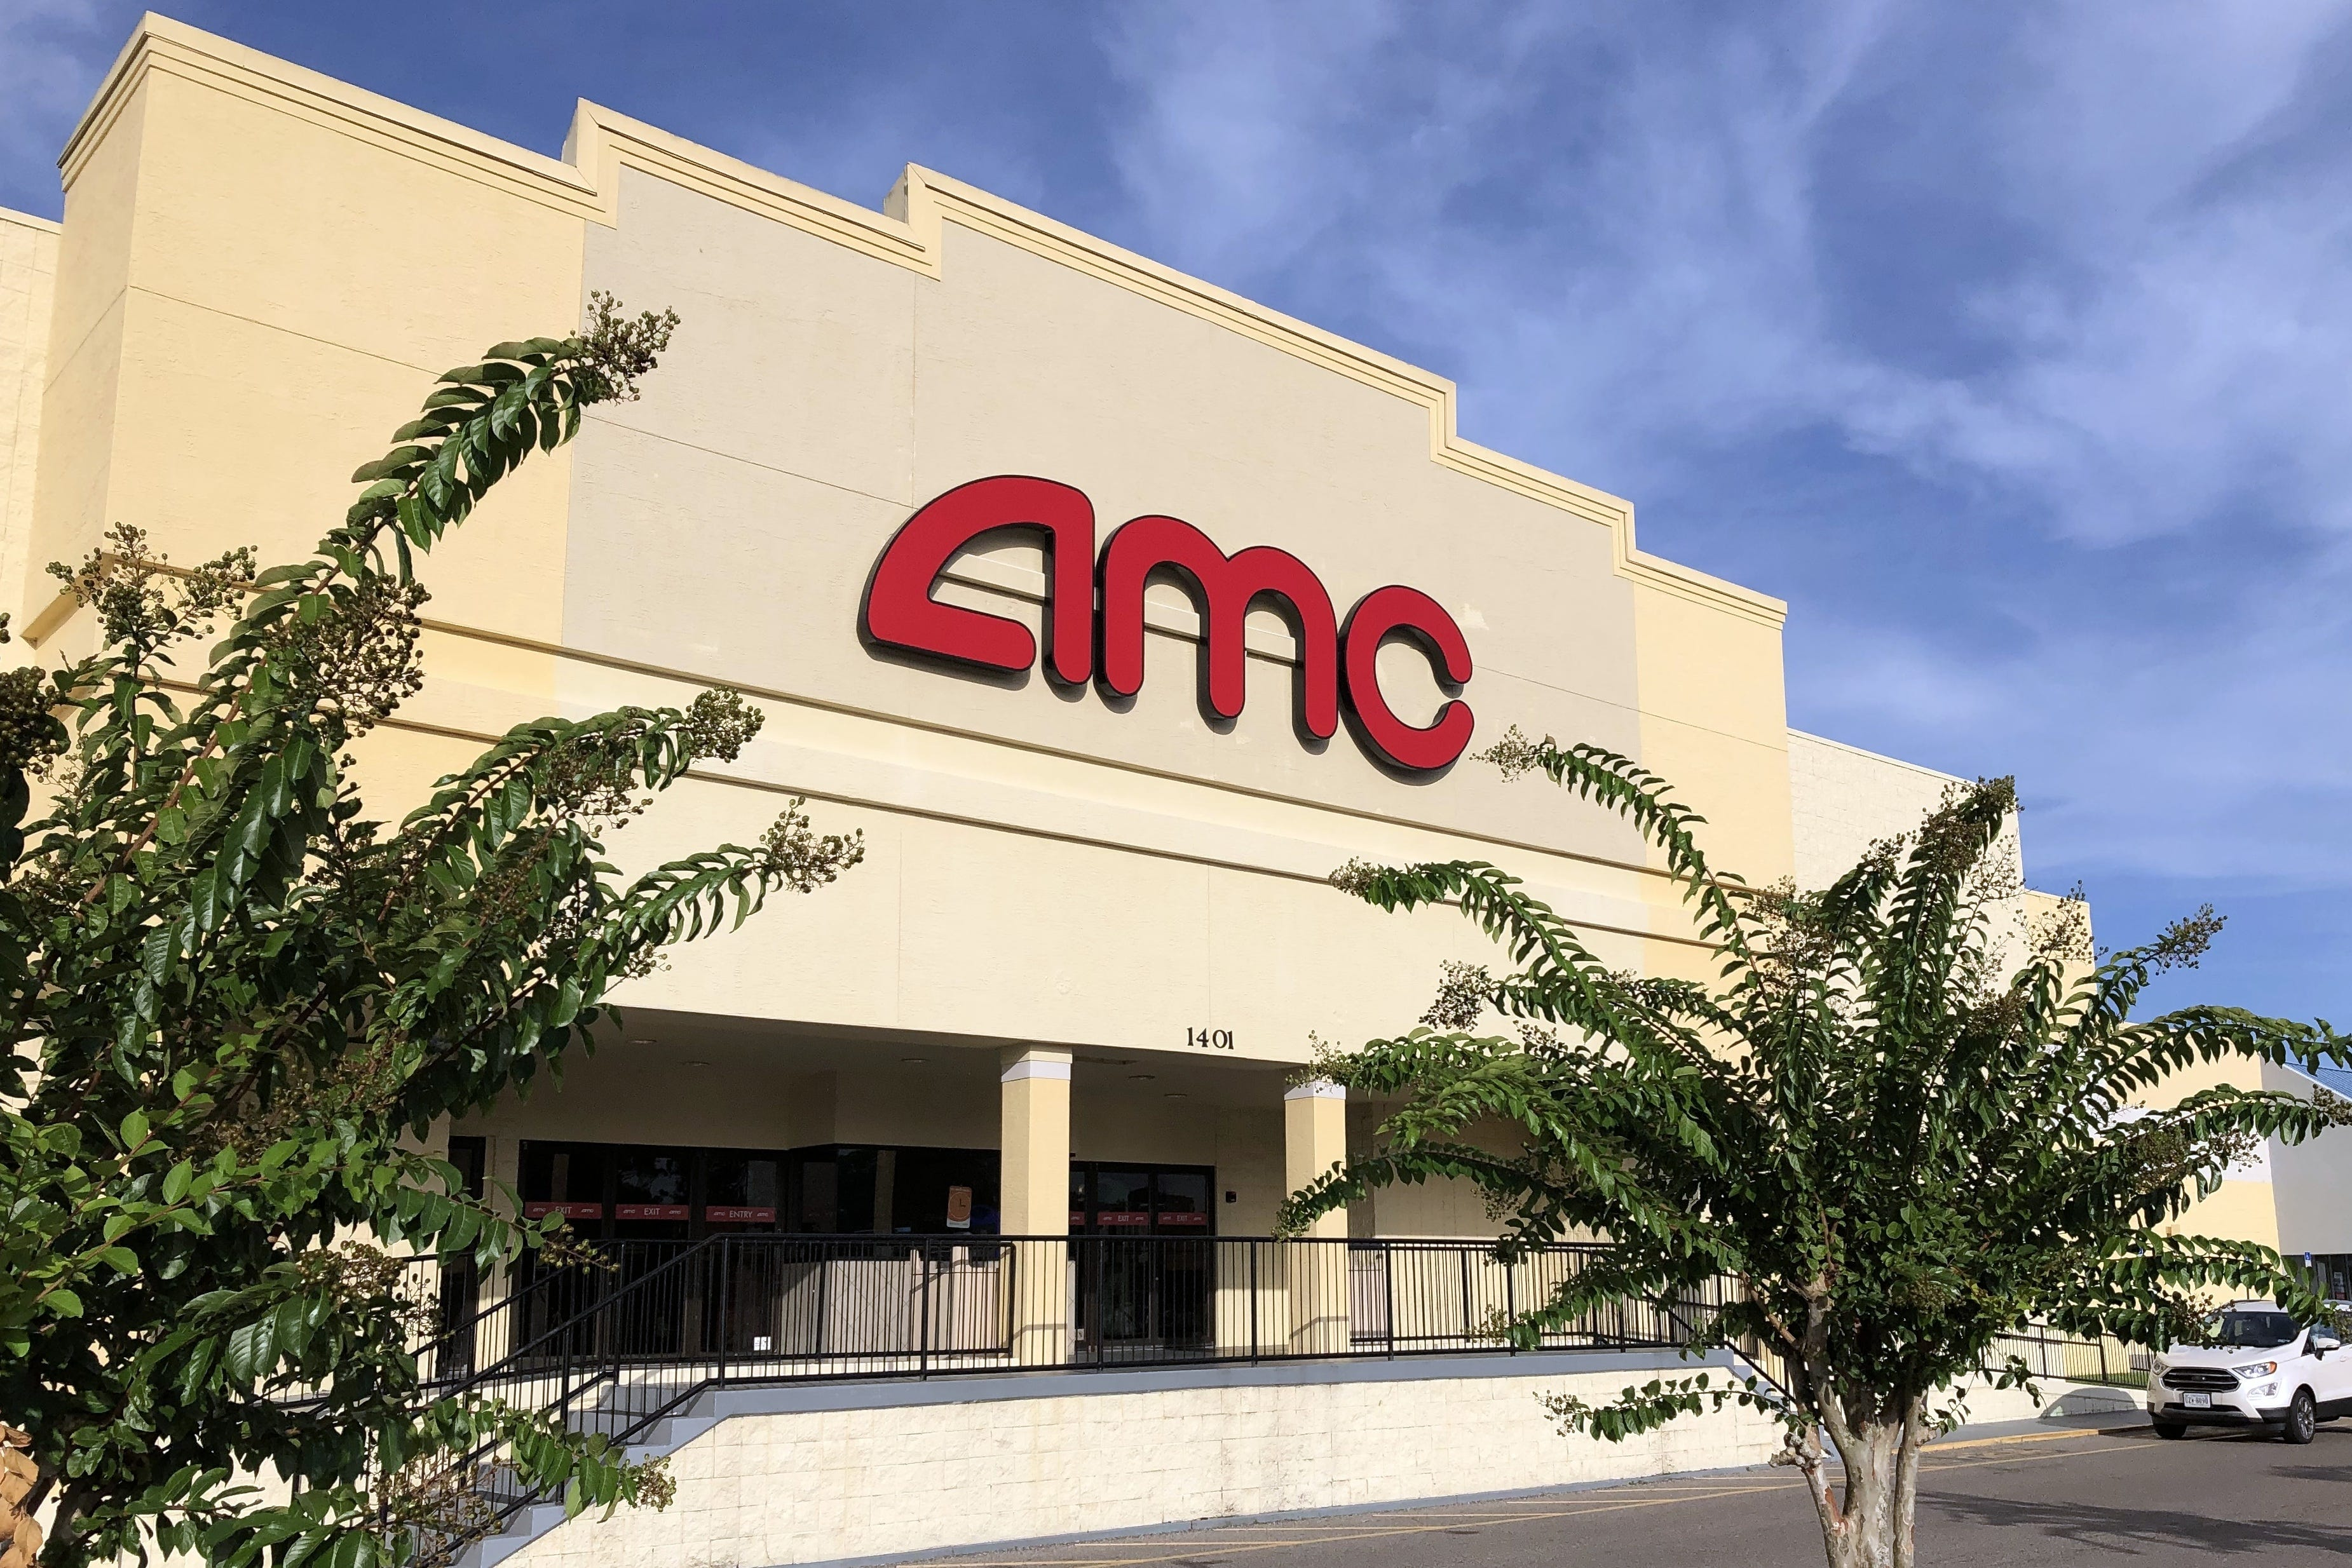 Area movie theaters set to reopen; Epic in St. Augustine keeping drive-in open for now, too